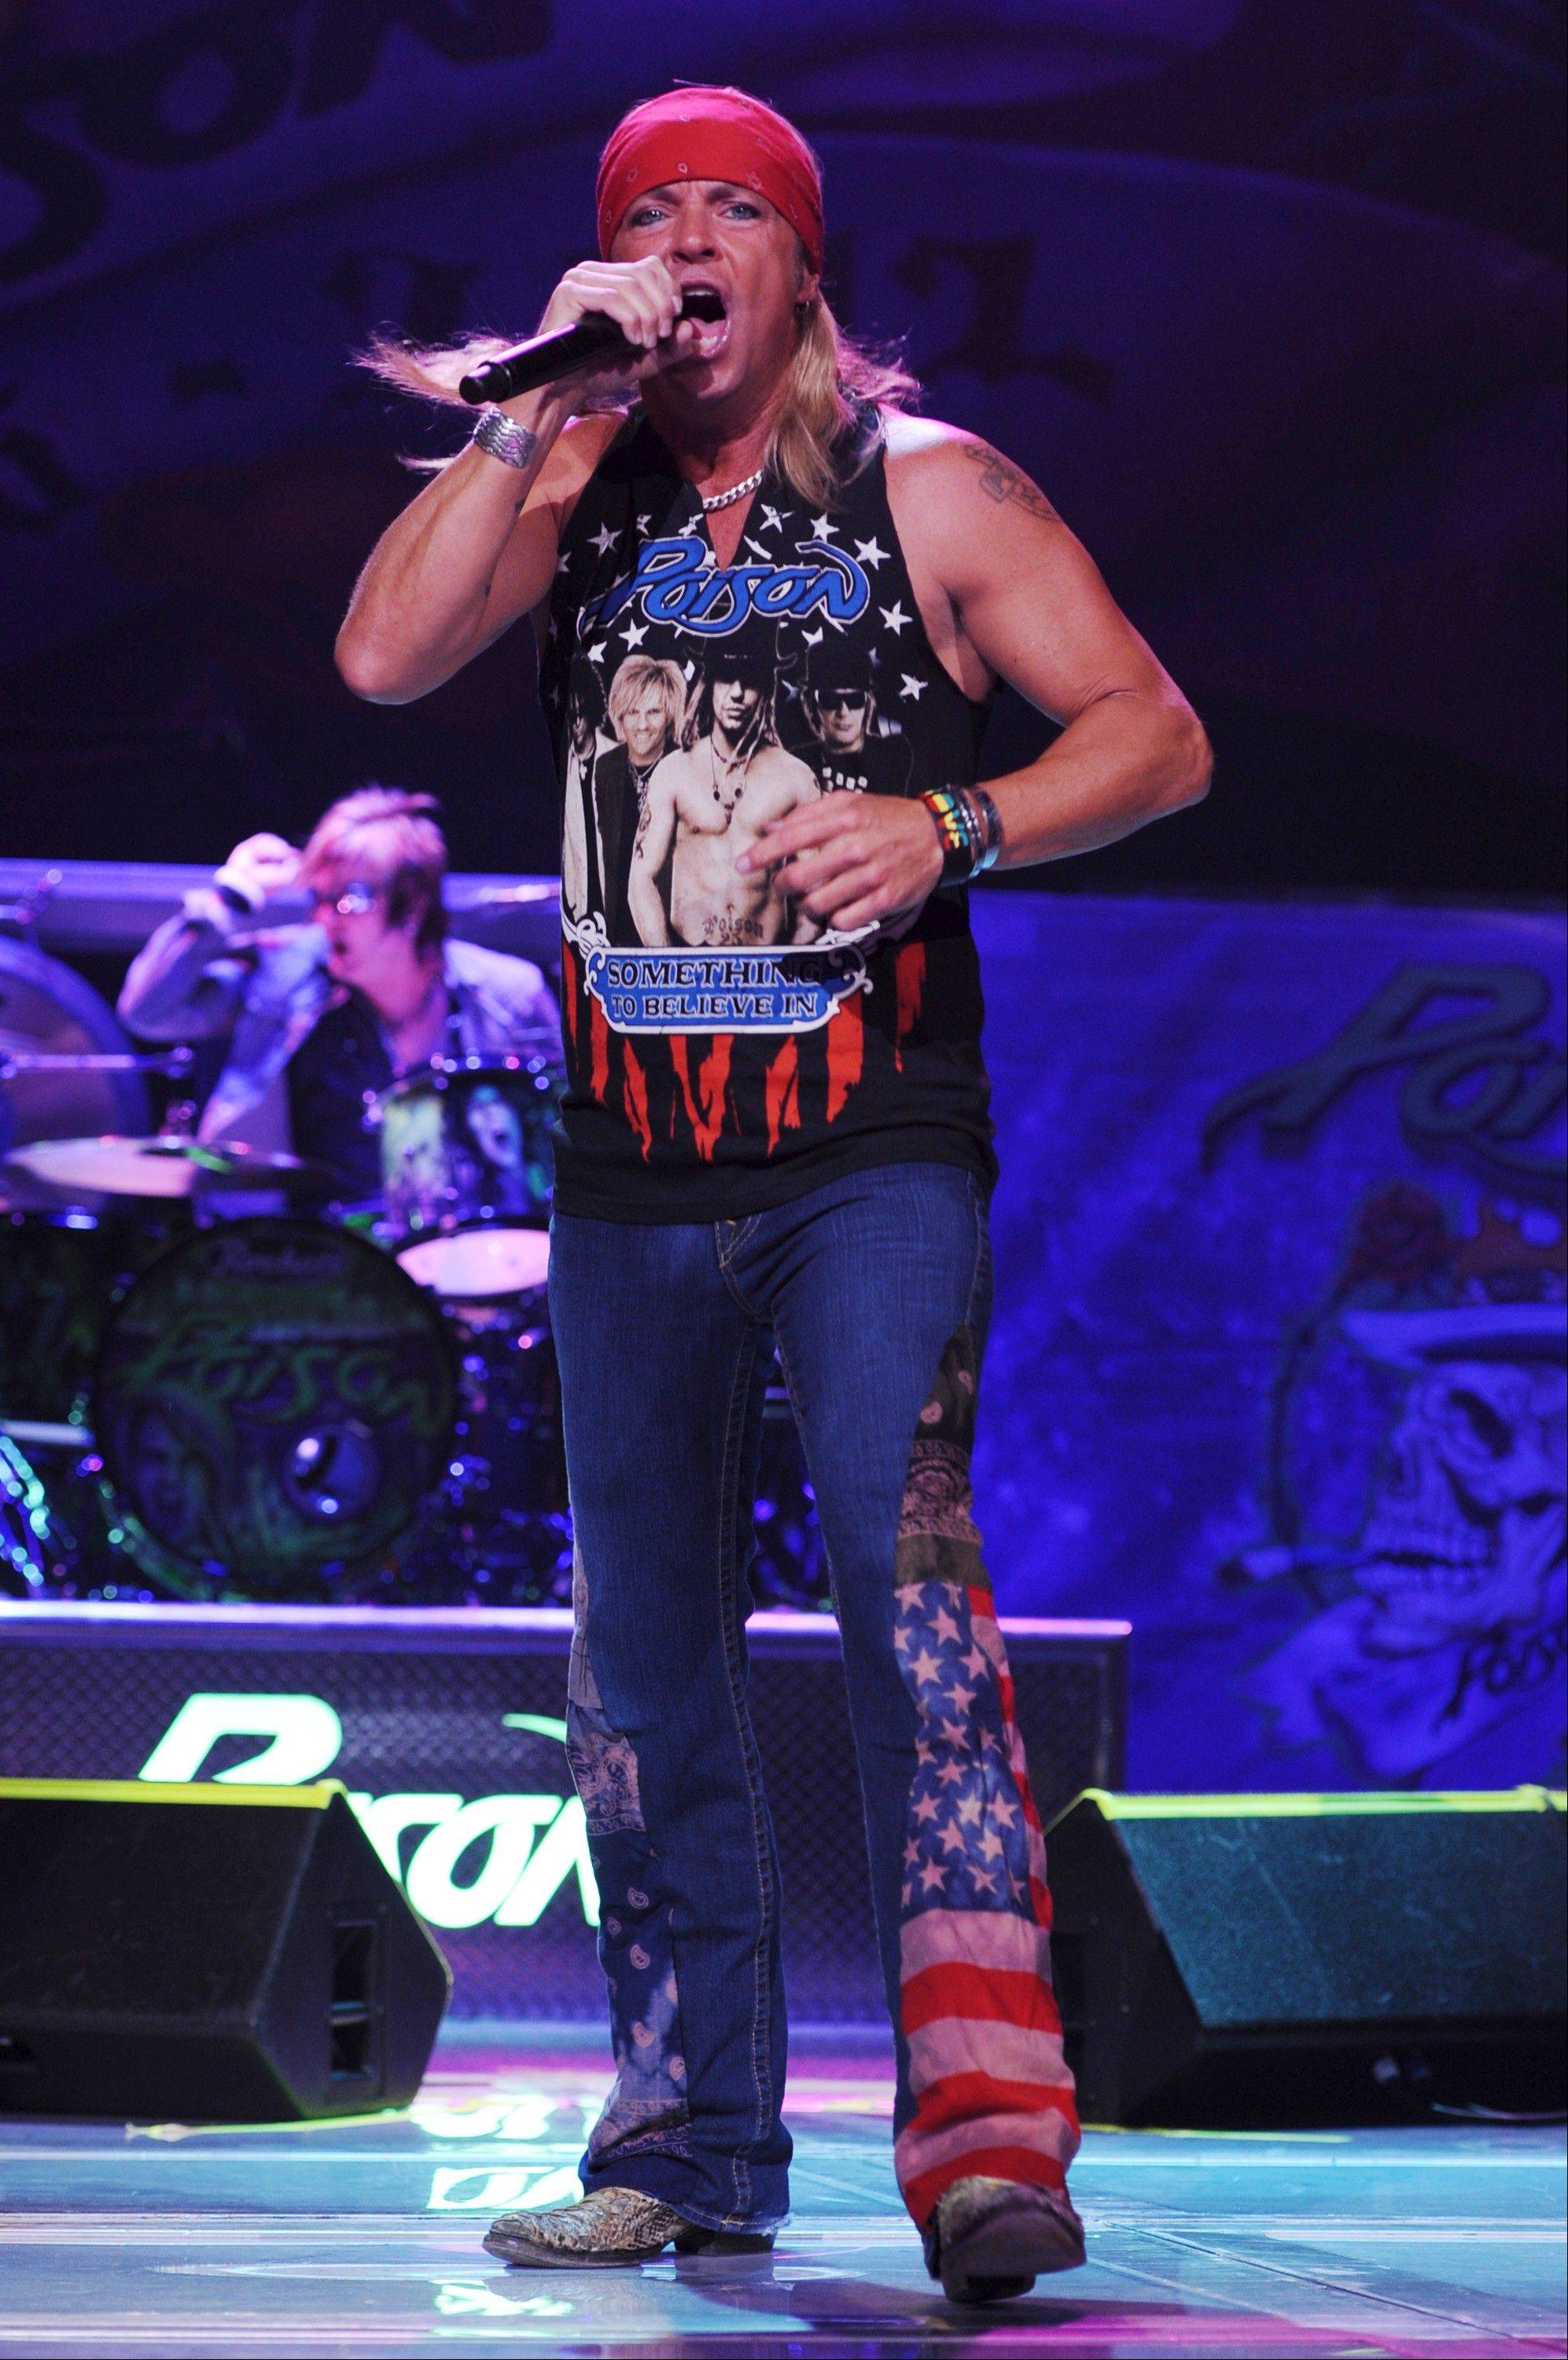 Bret Michaels brings his bombastic brand of rock to the Arcada Theatre in St. Charles on Friday, Nov. 23.